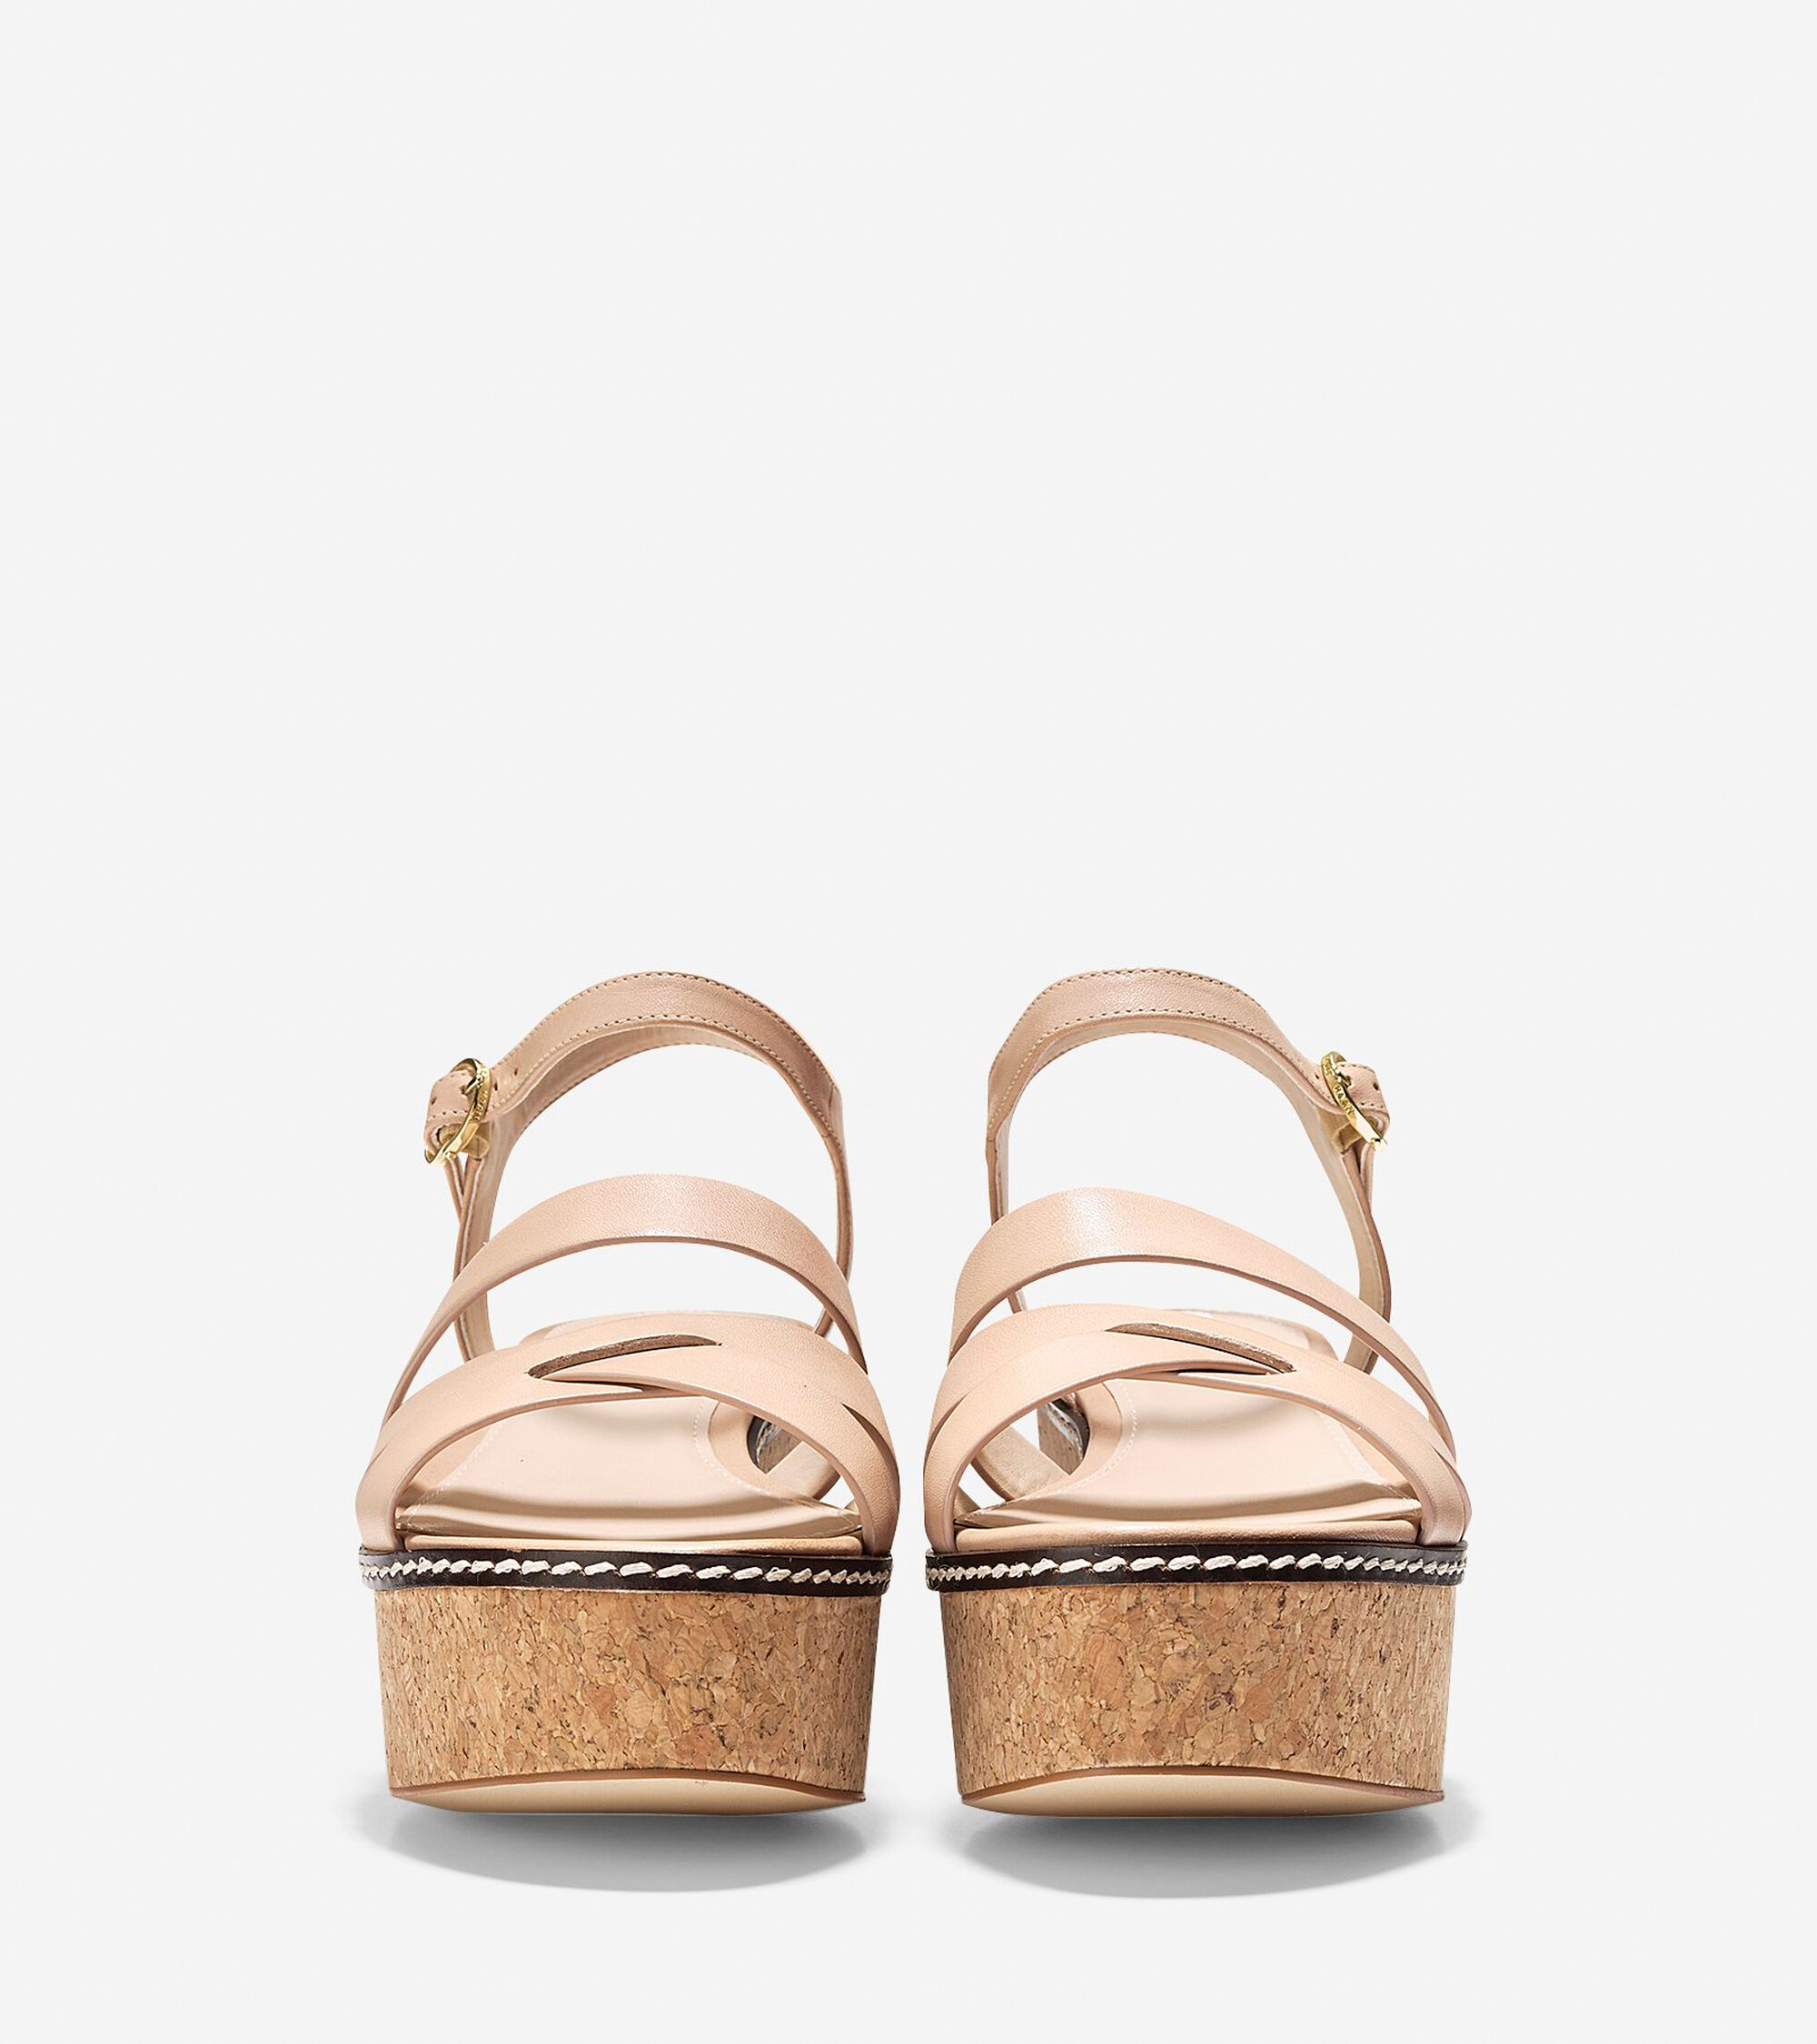 cf85ea25843d Jianna Wedge Sandals 55mm in Nude Cork